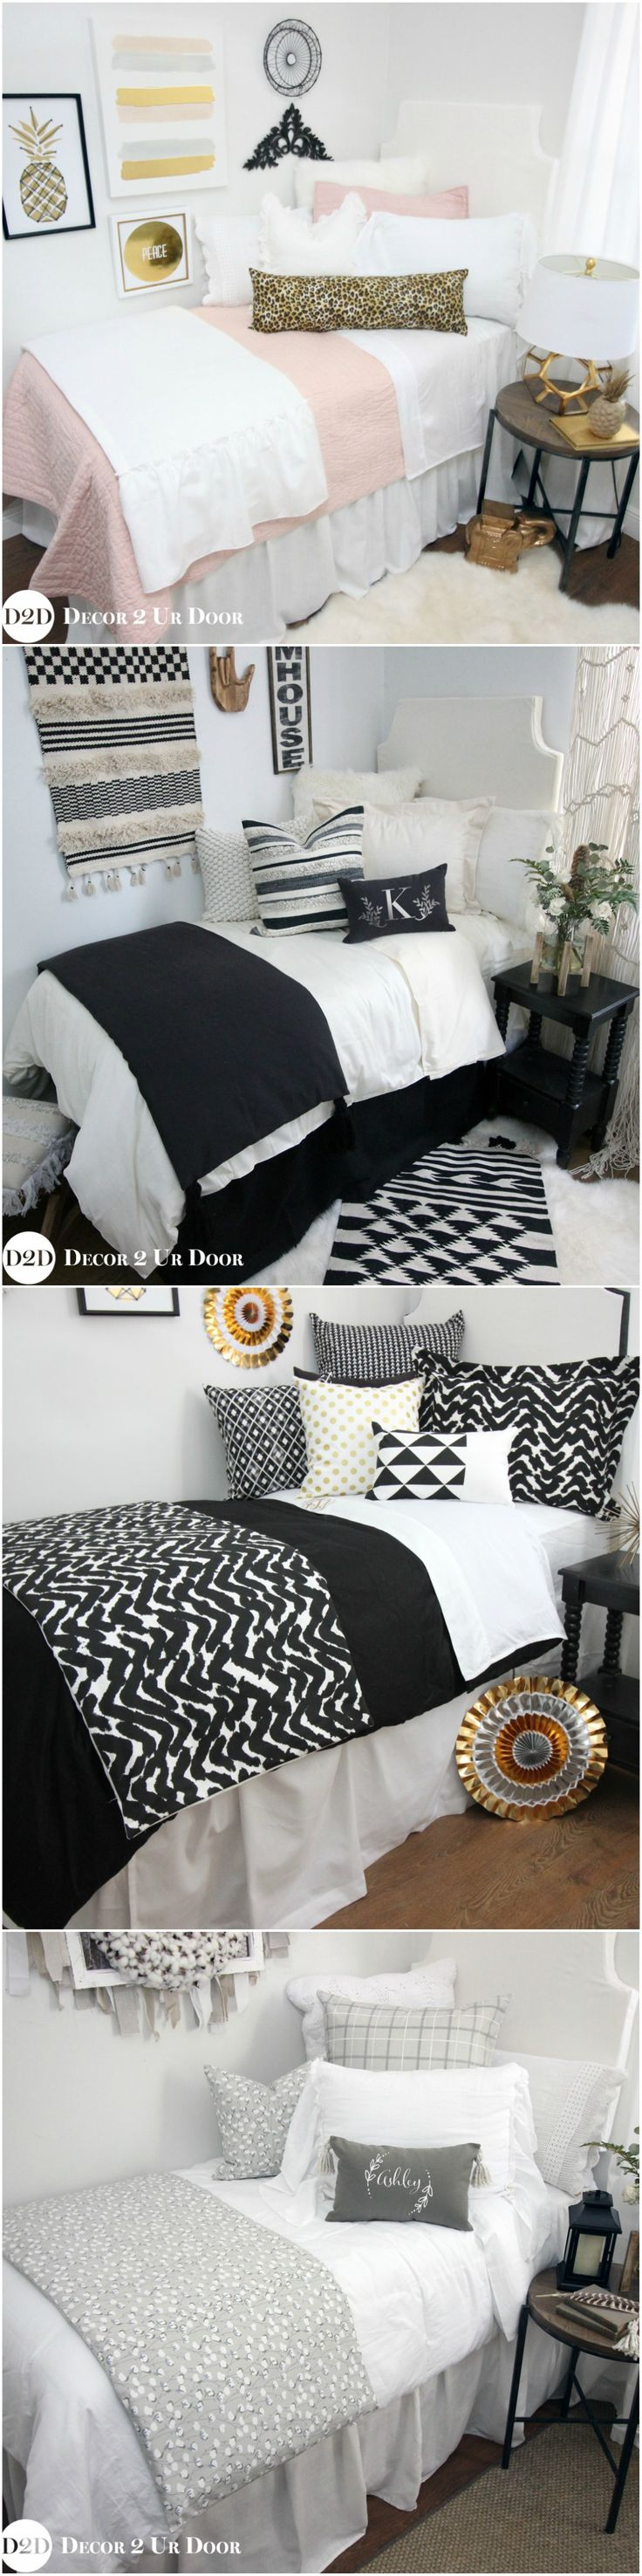 Shop our trendy apartment bedding and décor by collection. Adulting is hard - apartment bedding and decor shouldn't have to be! Shop our apartment bedding by collection - color, trend, or separates. Make your apartment feel like home. Apartment bedding is available in all bed sizes: Twin, Full, Queen, and King. We've taken all of the guess work out of designing your apartment bedroom.